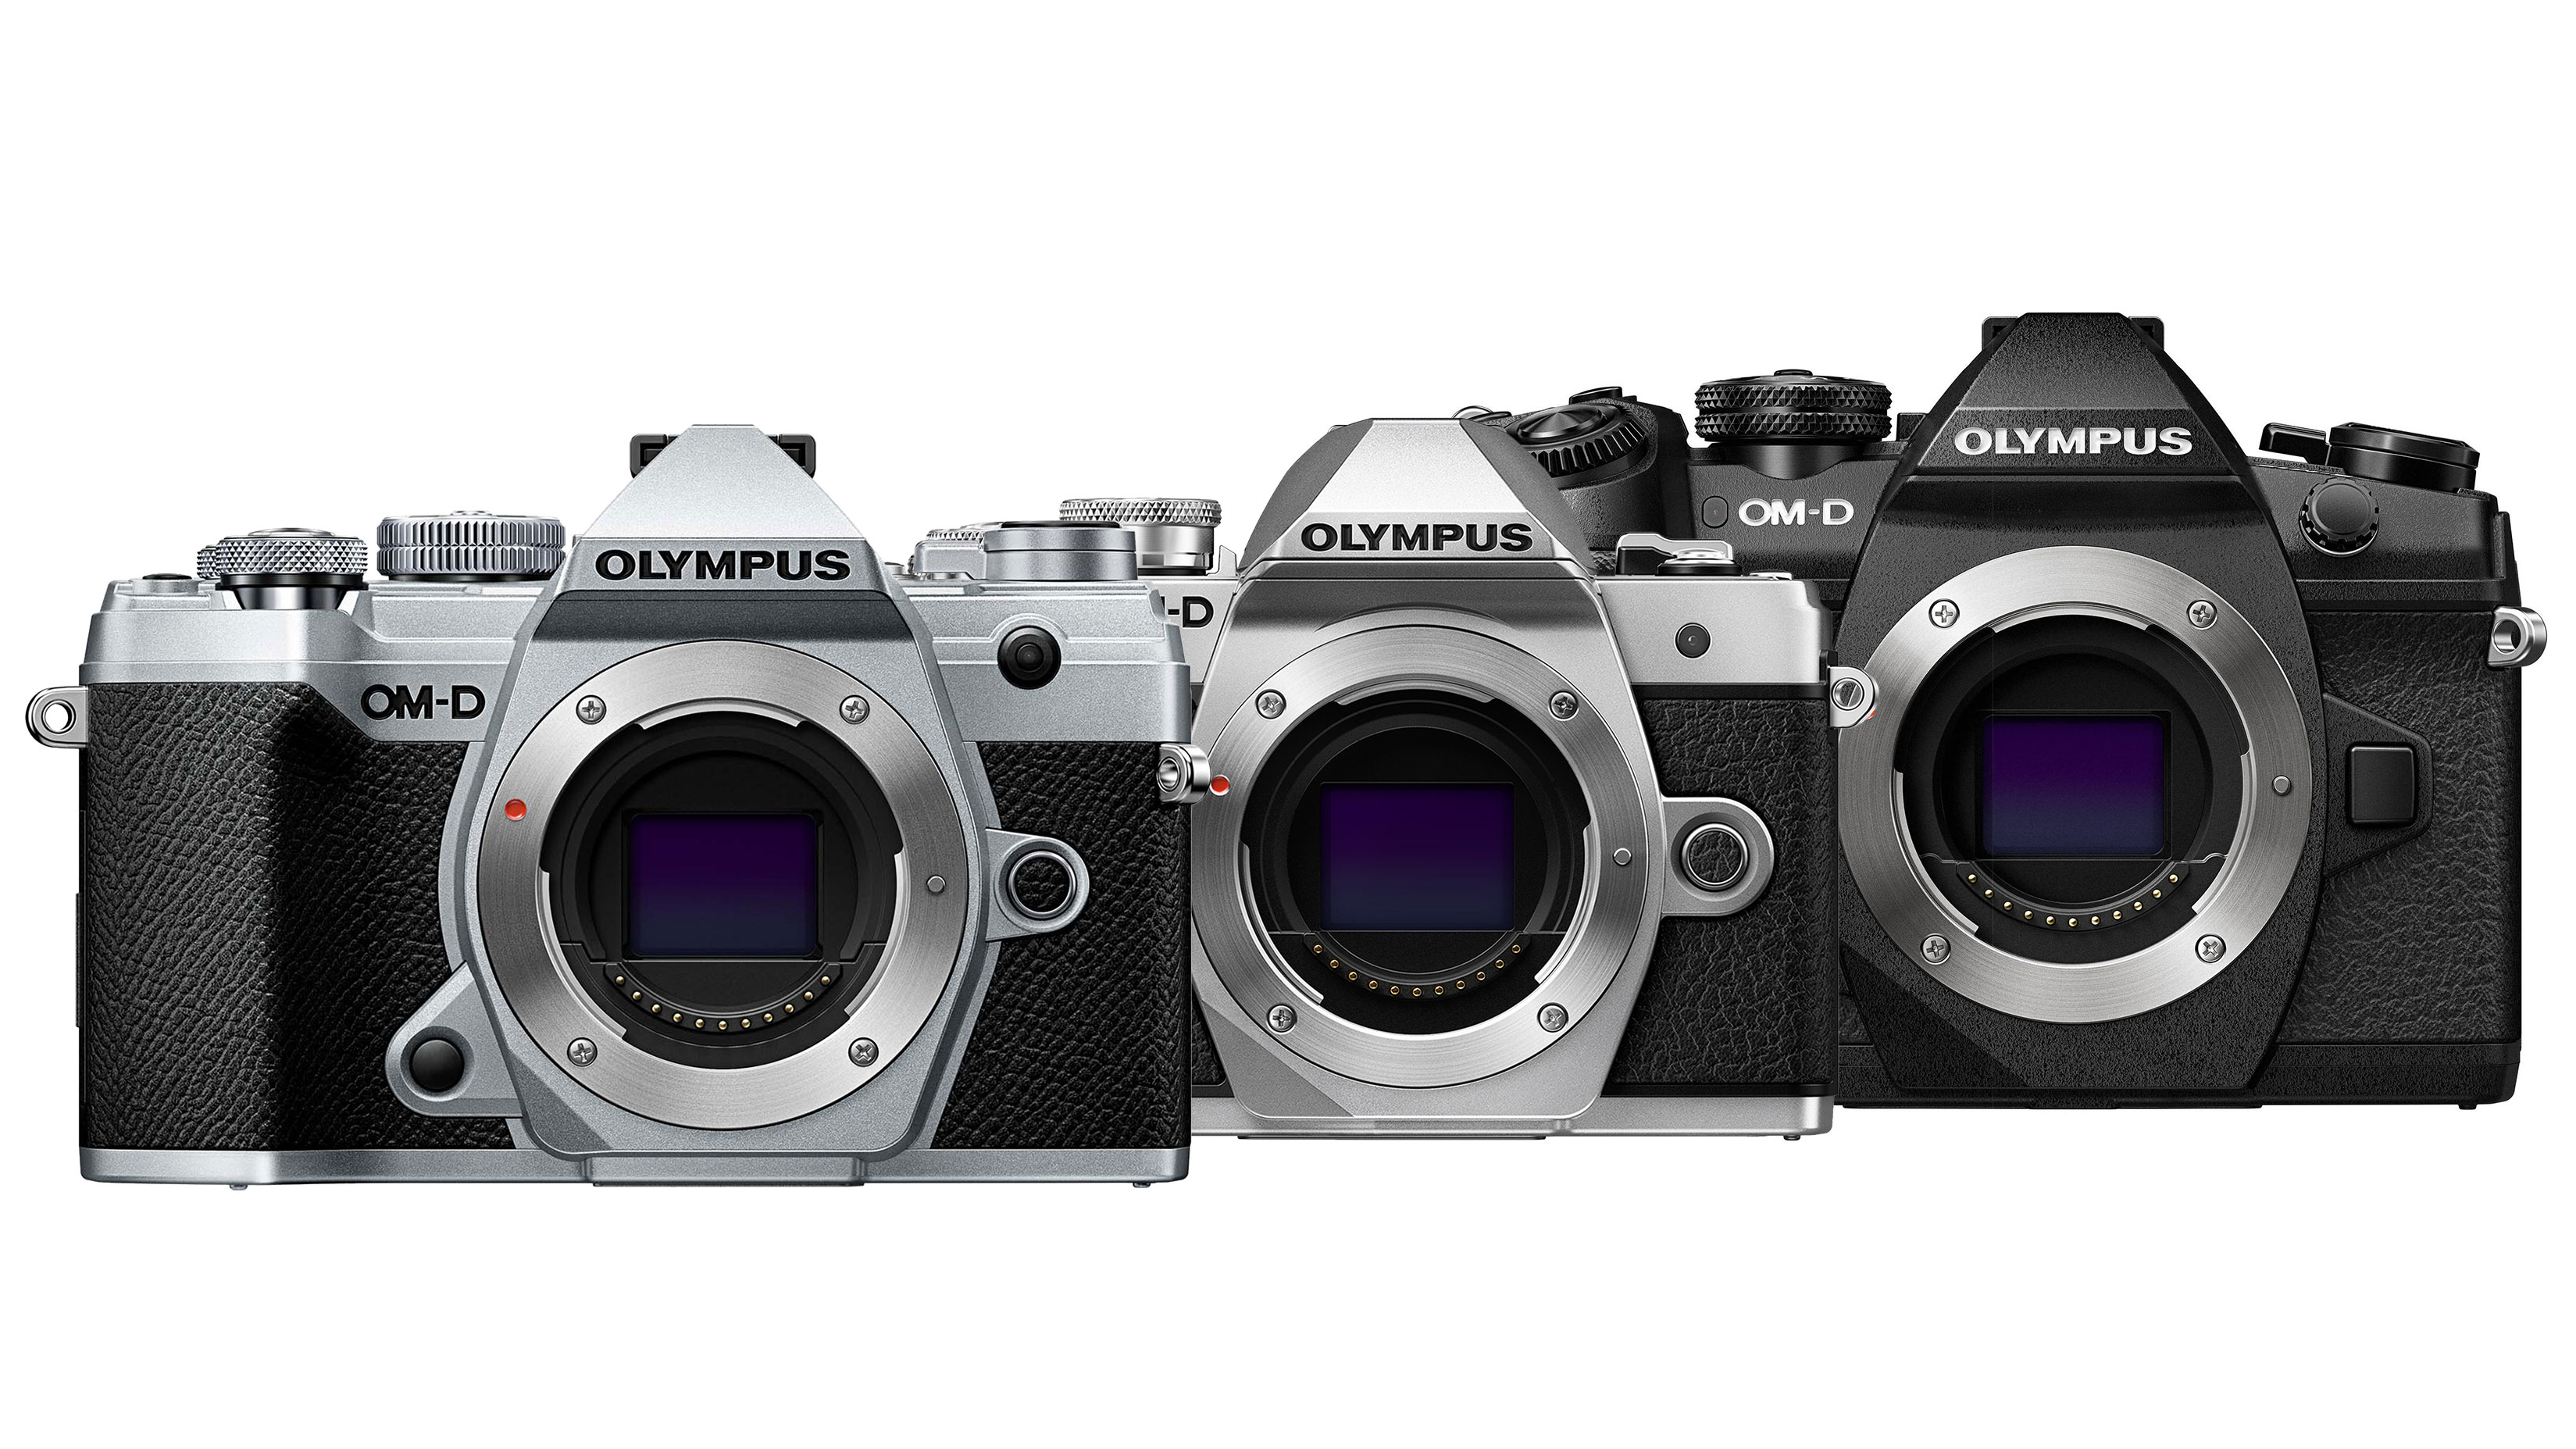 Olympus OM-D E-M10 III vs E-M5 III vs E-M1 II: which OM-D is right for you? | Digital Camera World